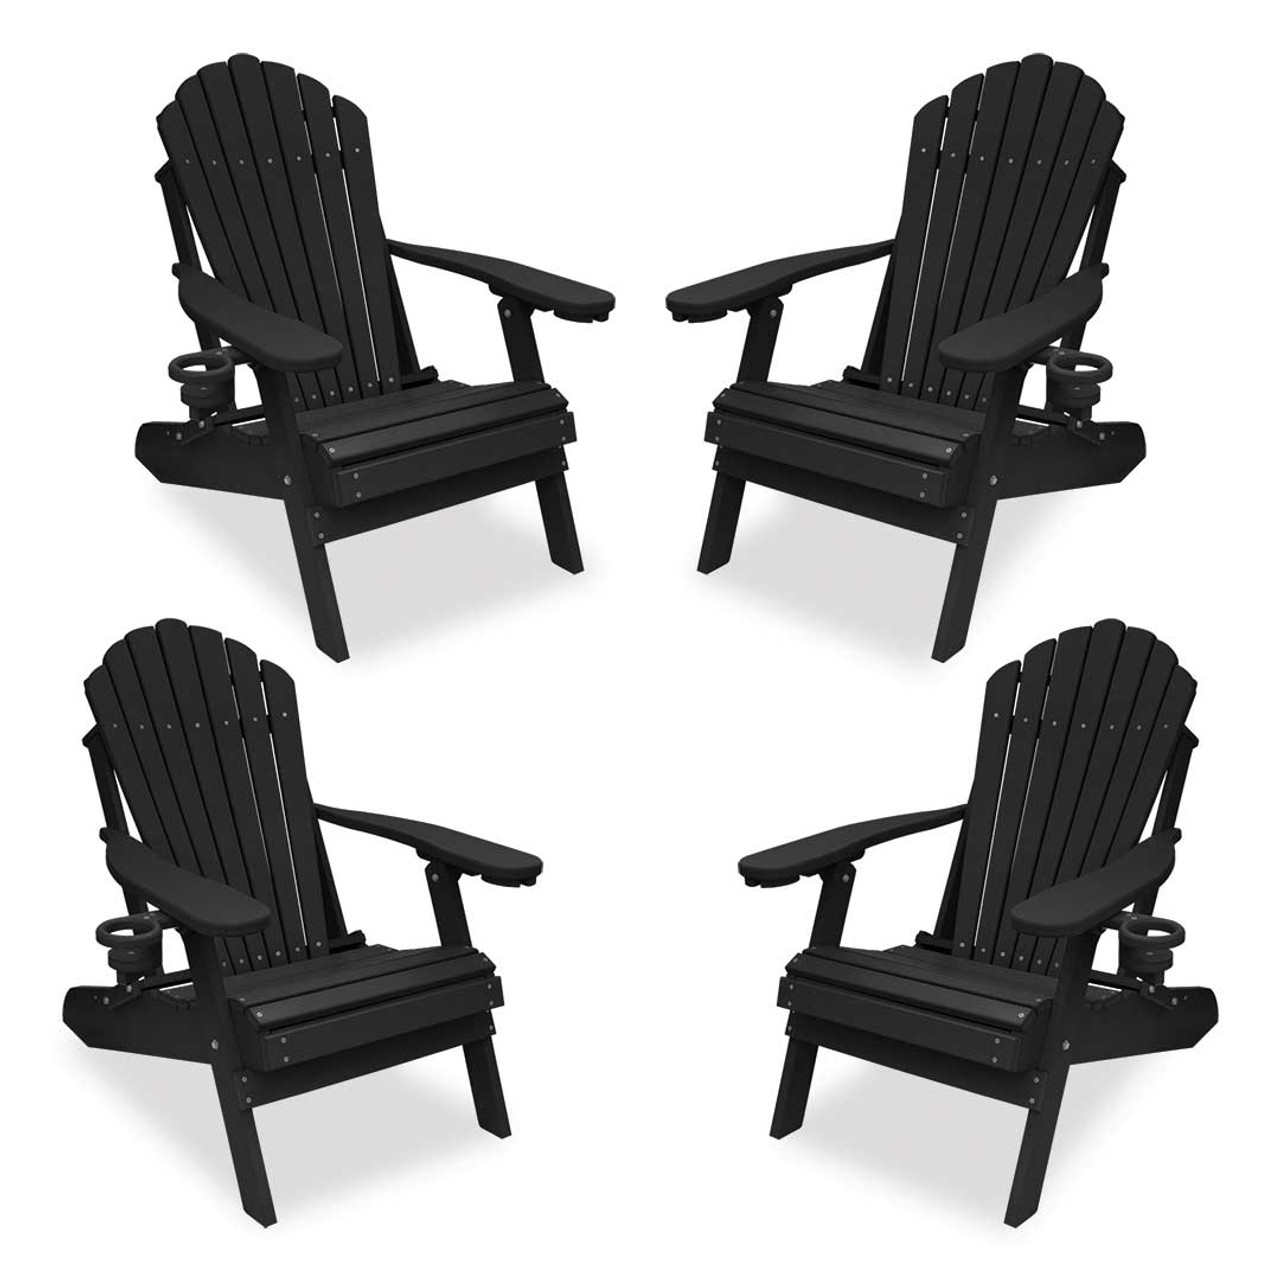 Adirondack Chair Set Outer Banks 4 Piece Deluxe Adirondack Chair Set Available In 18 Colors